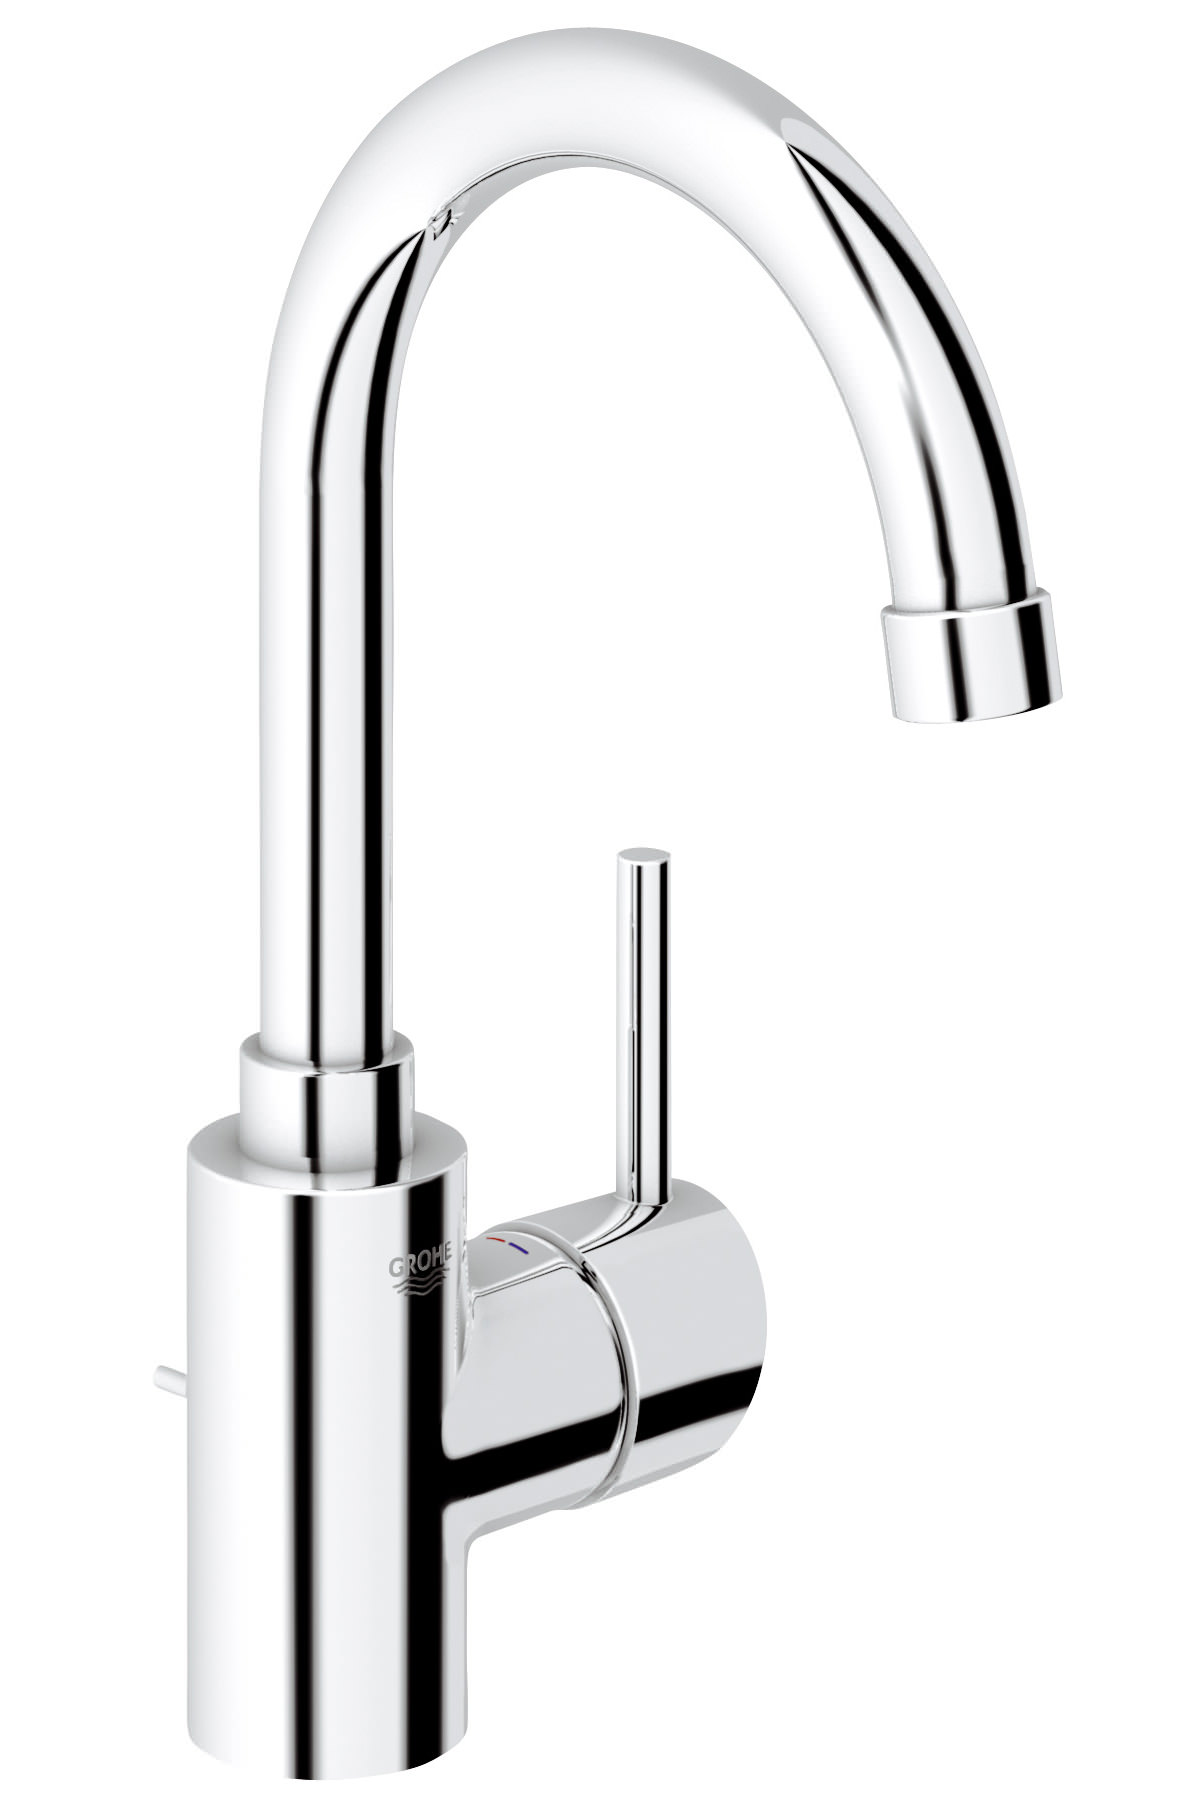 Grohe Concetto Basin Mixer Tap With Pop Up Waste 32629001